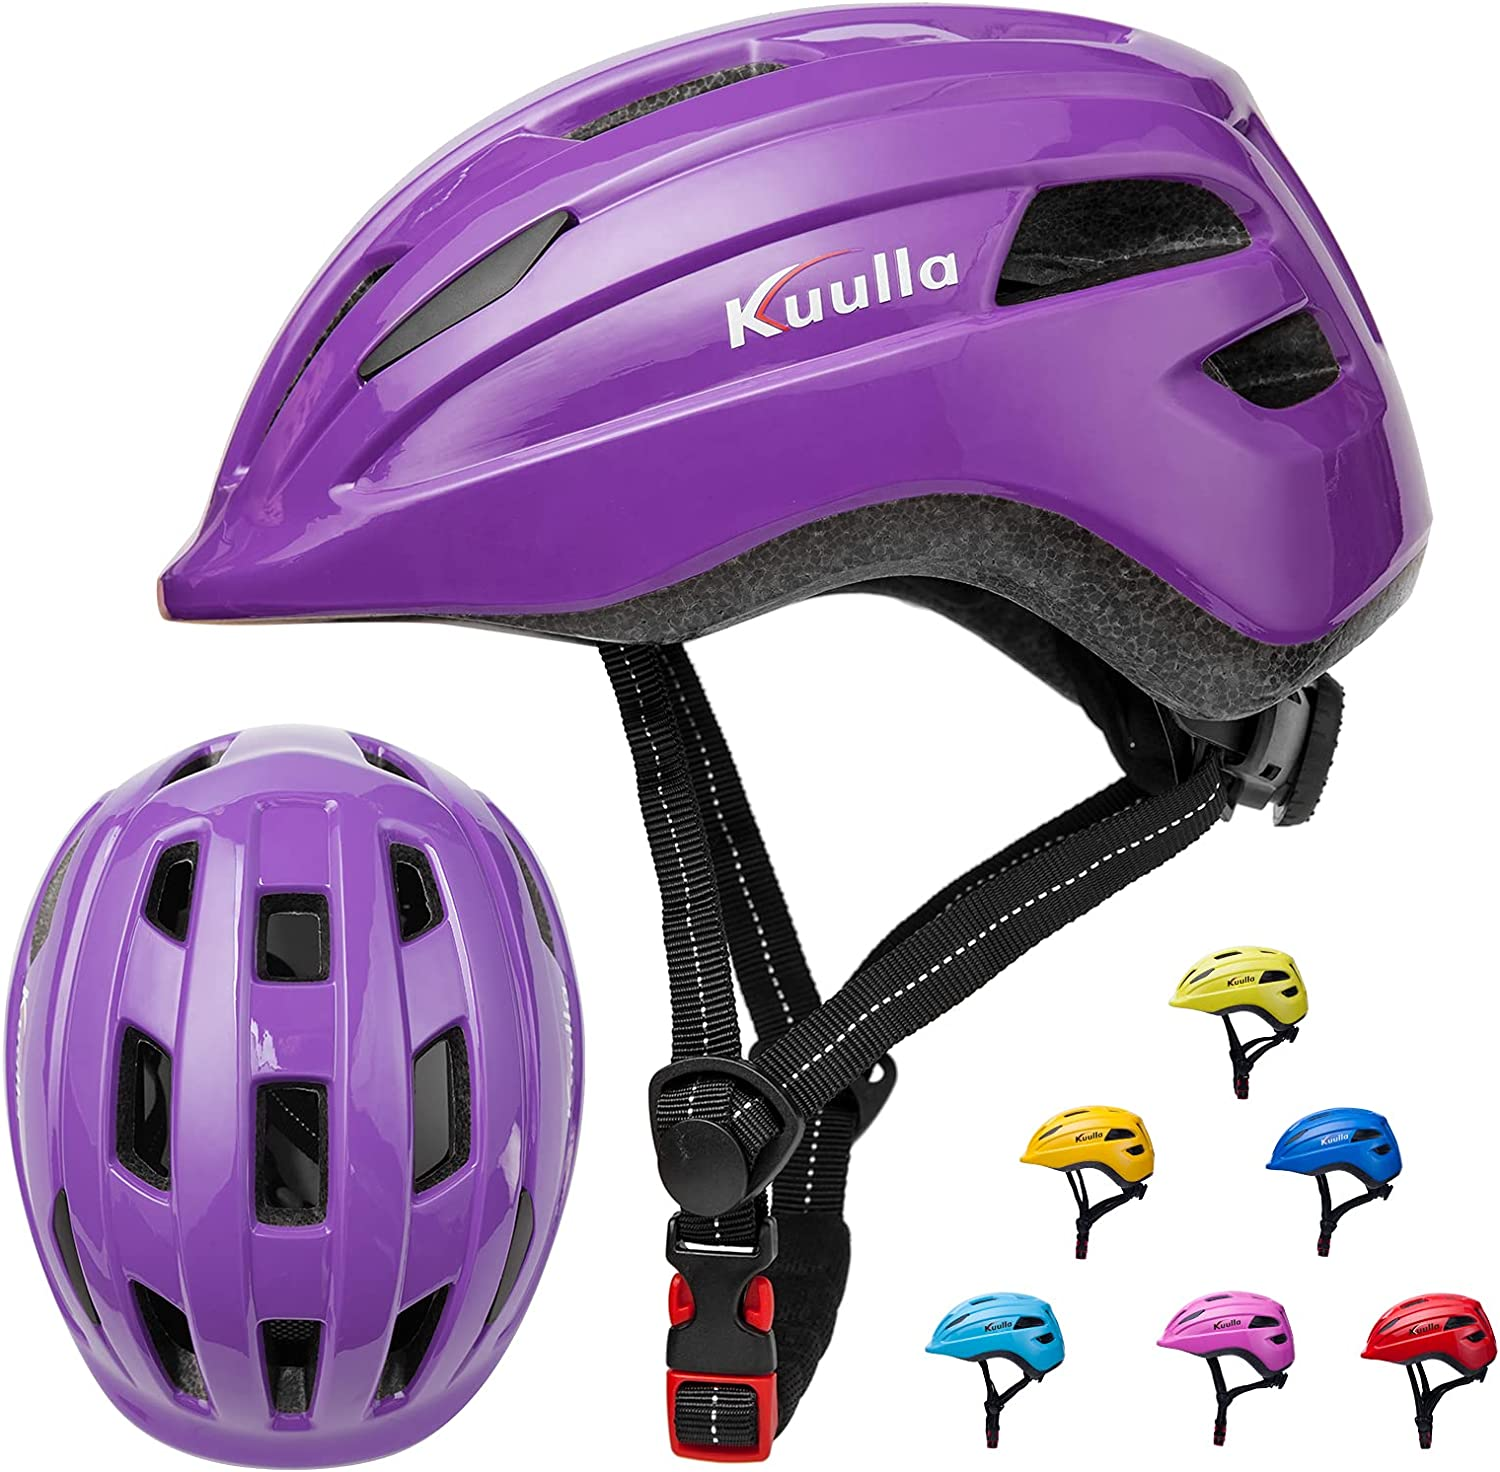 Kids Helmet Toddler El Paso Mall Bike Adjustable Child for A surprise price is realized